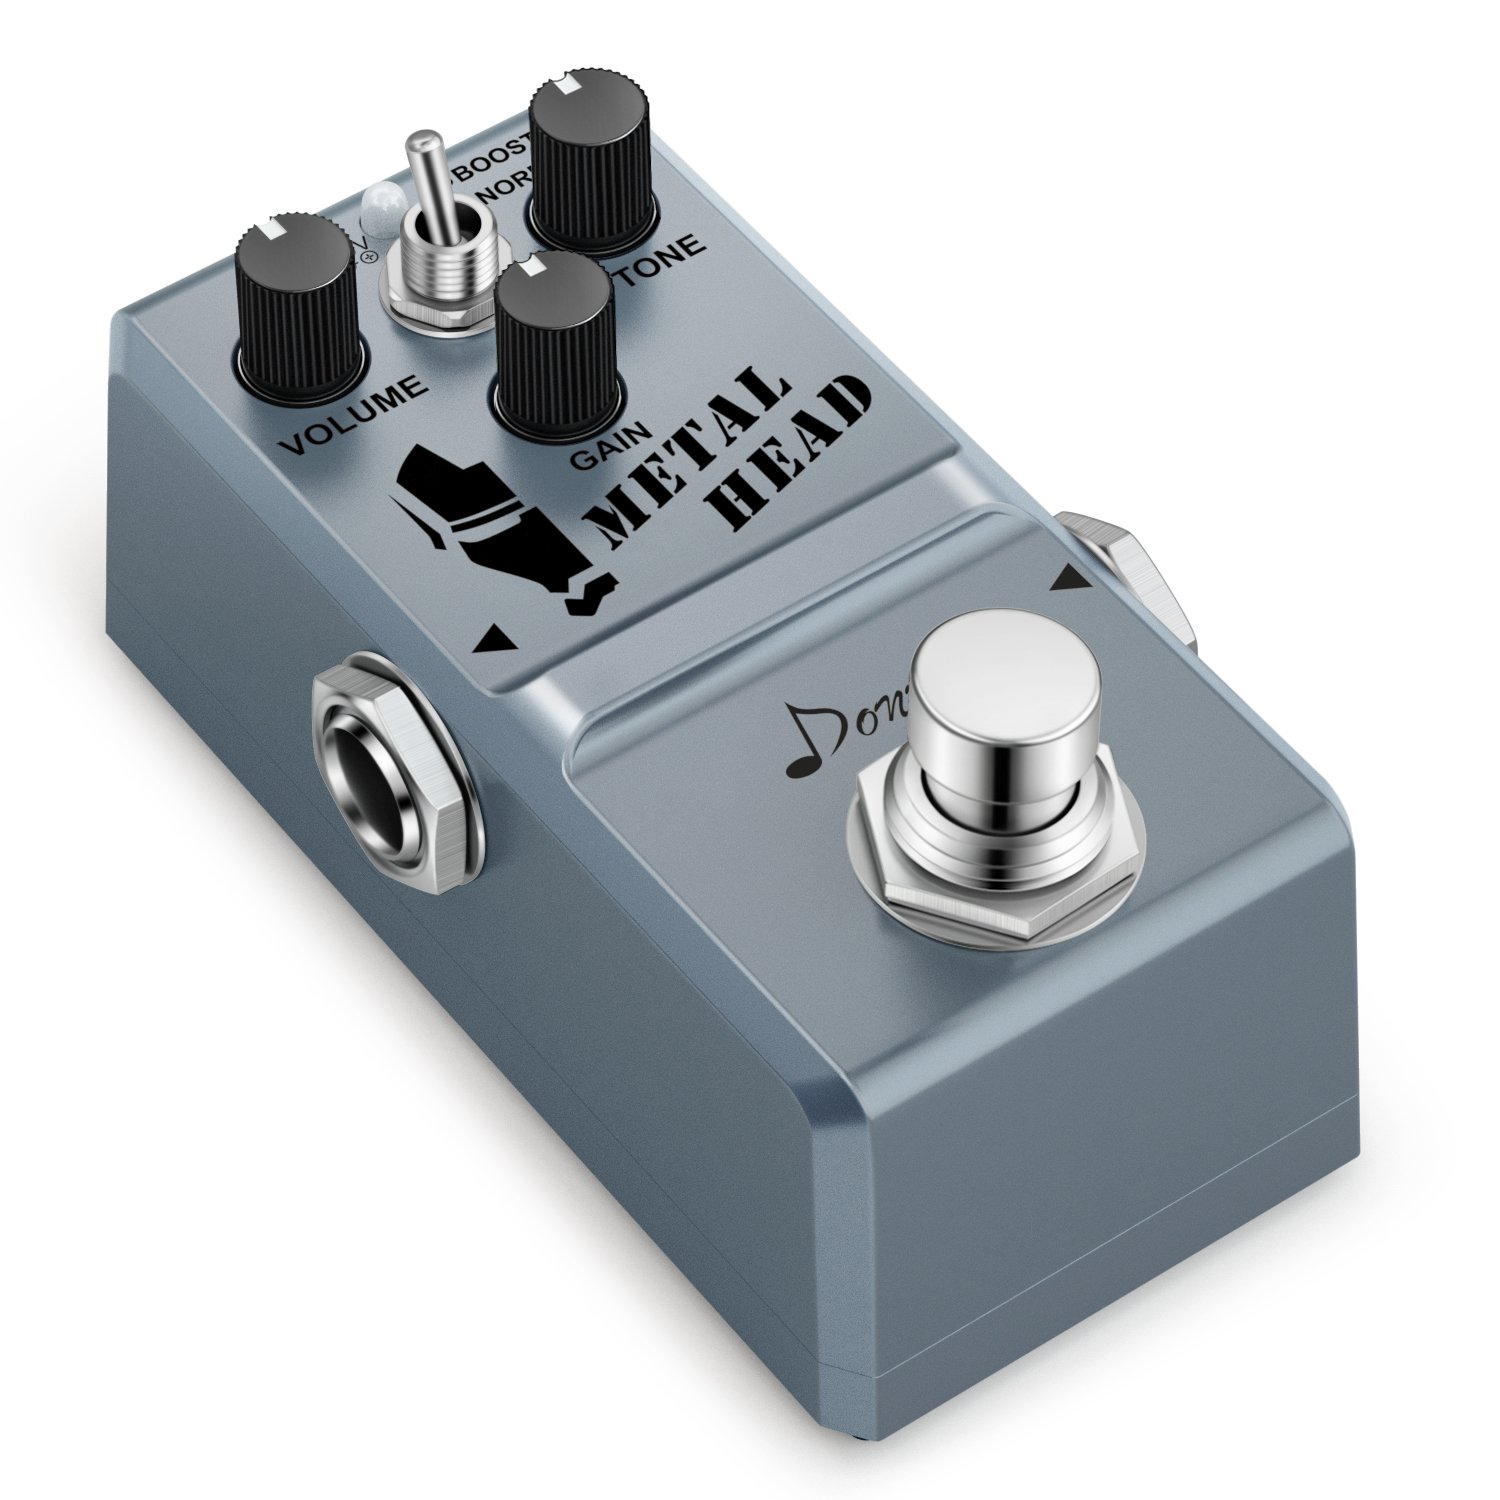 Donner Metal Head Guitar Effect Pedal Super Mini Metal Distortion Pedal by Donner